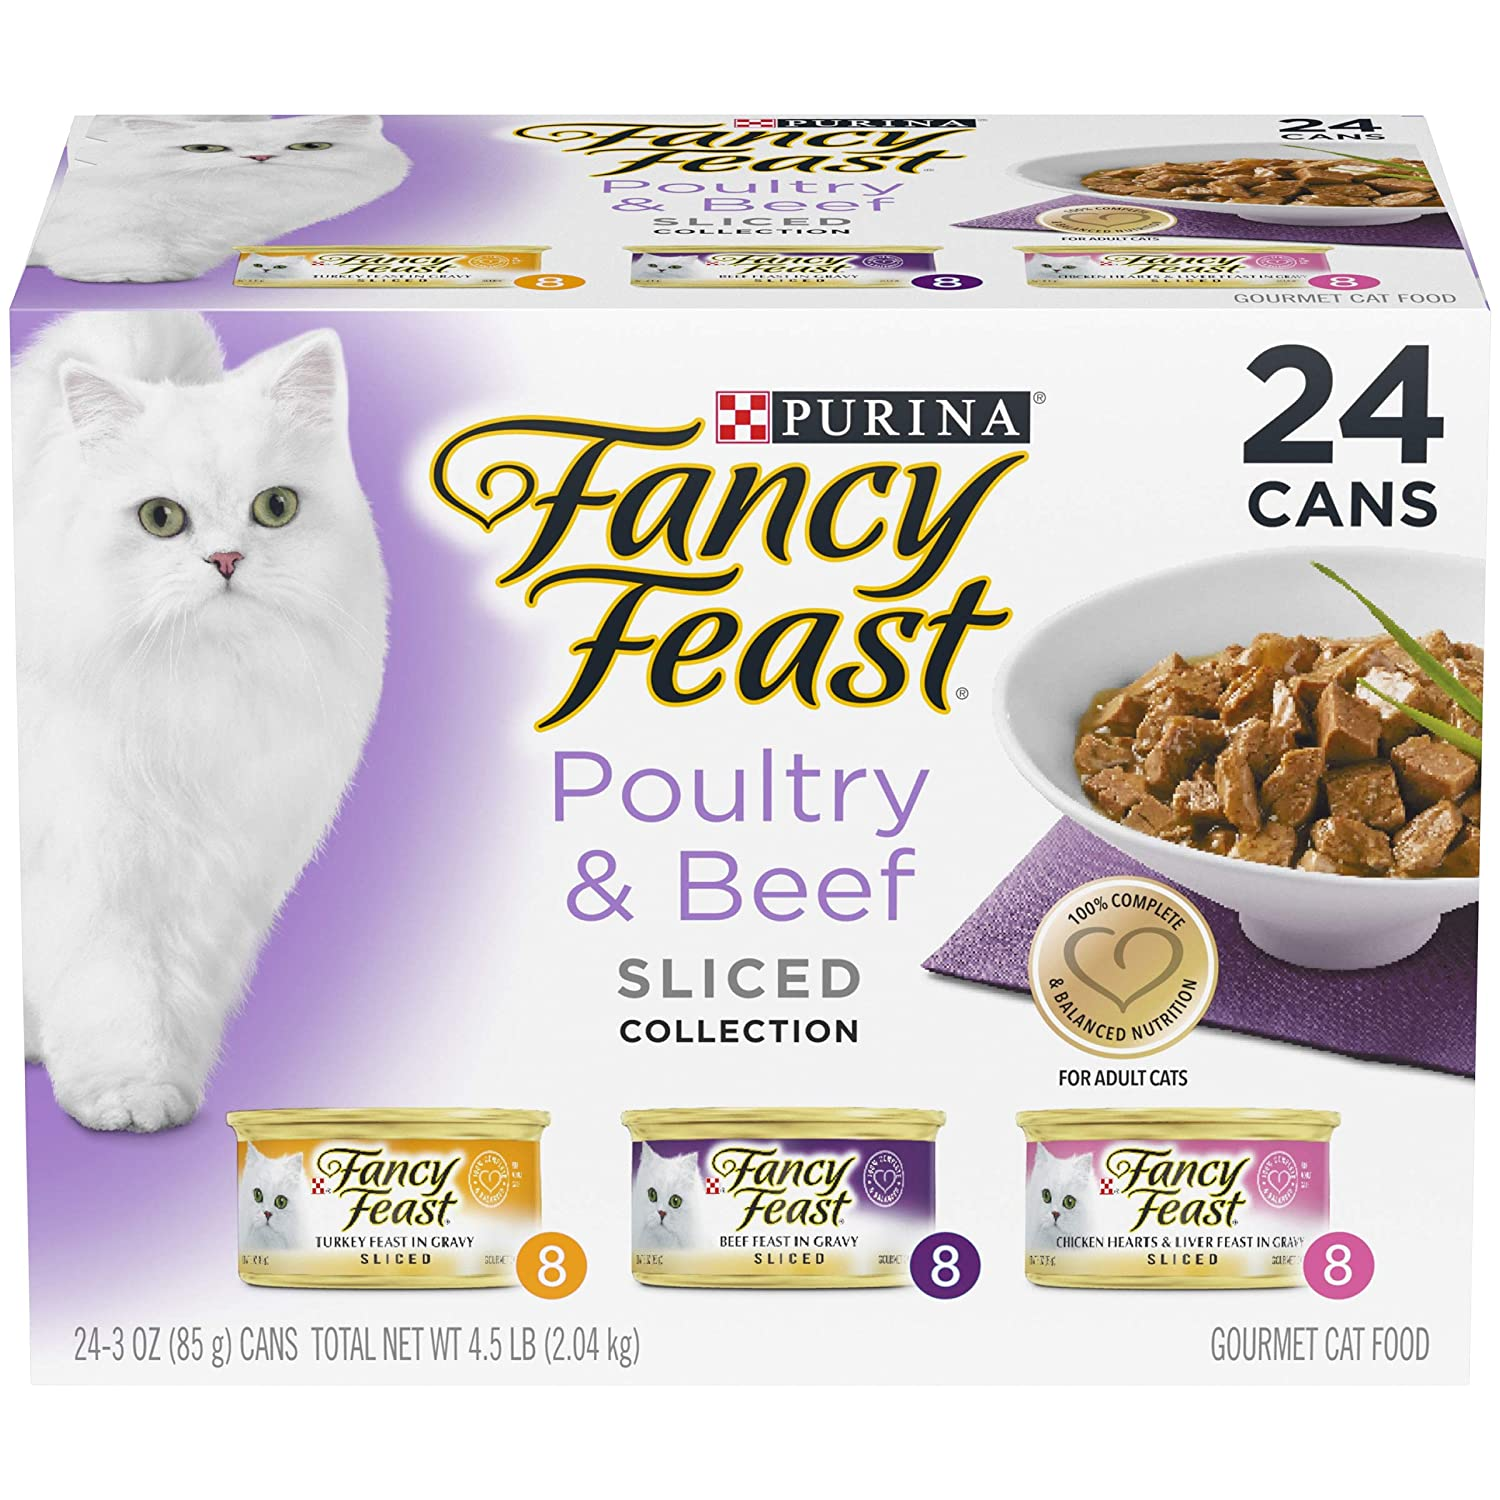 Purina Fancy Feast Sliced Poultry & Beef Collection Cat Food (24) 3 oz. Cans